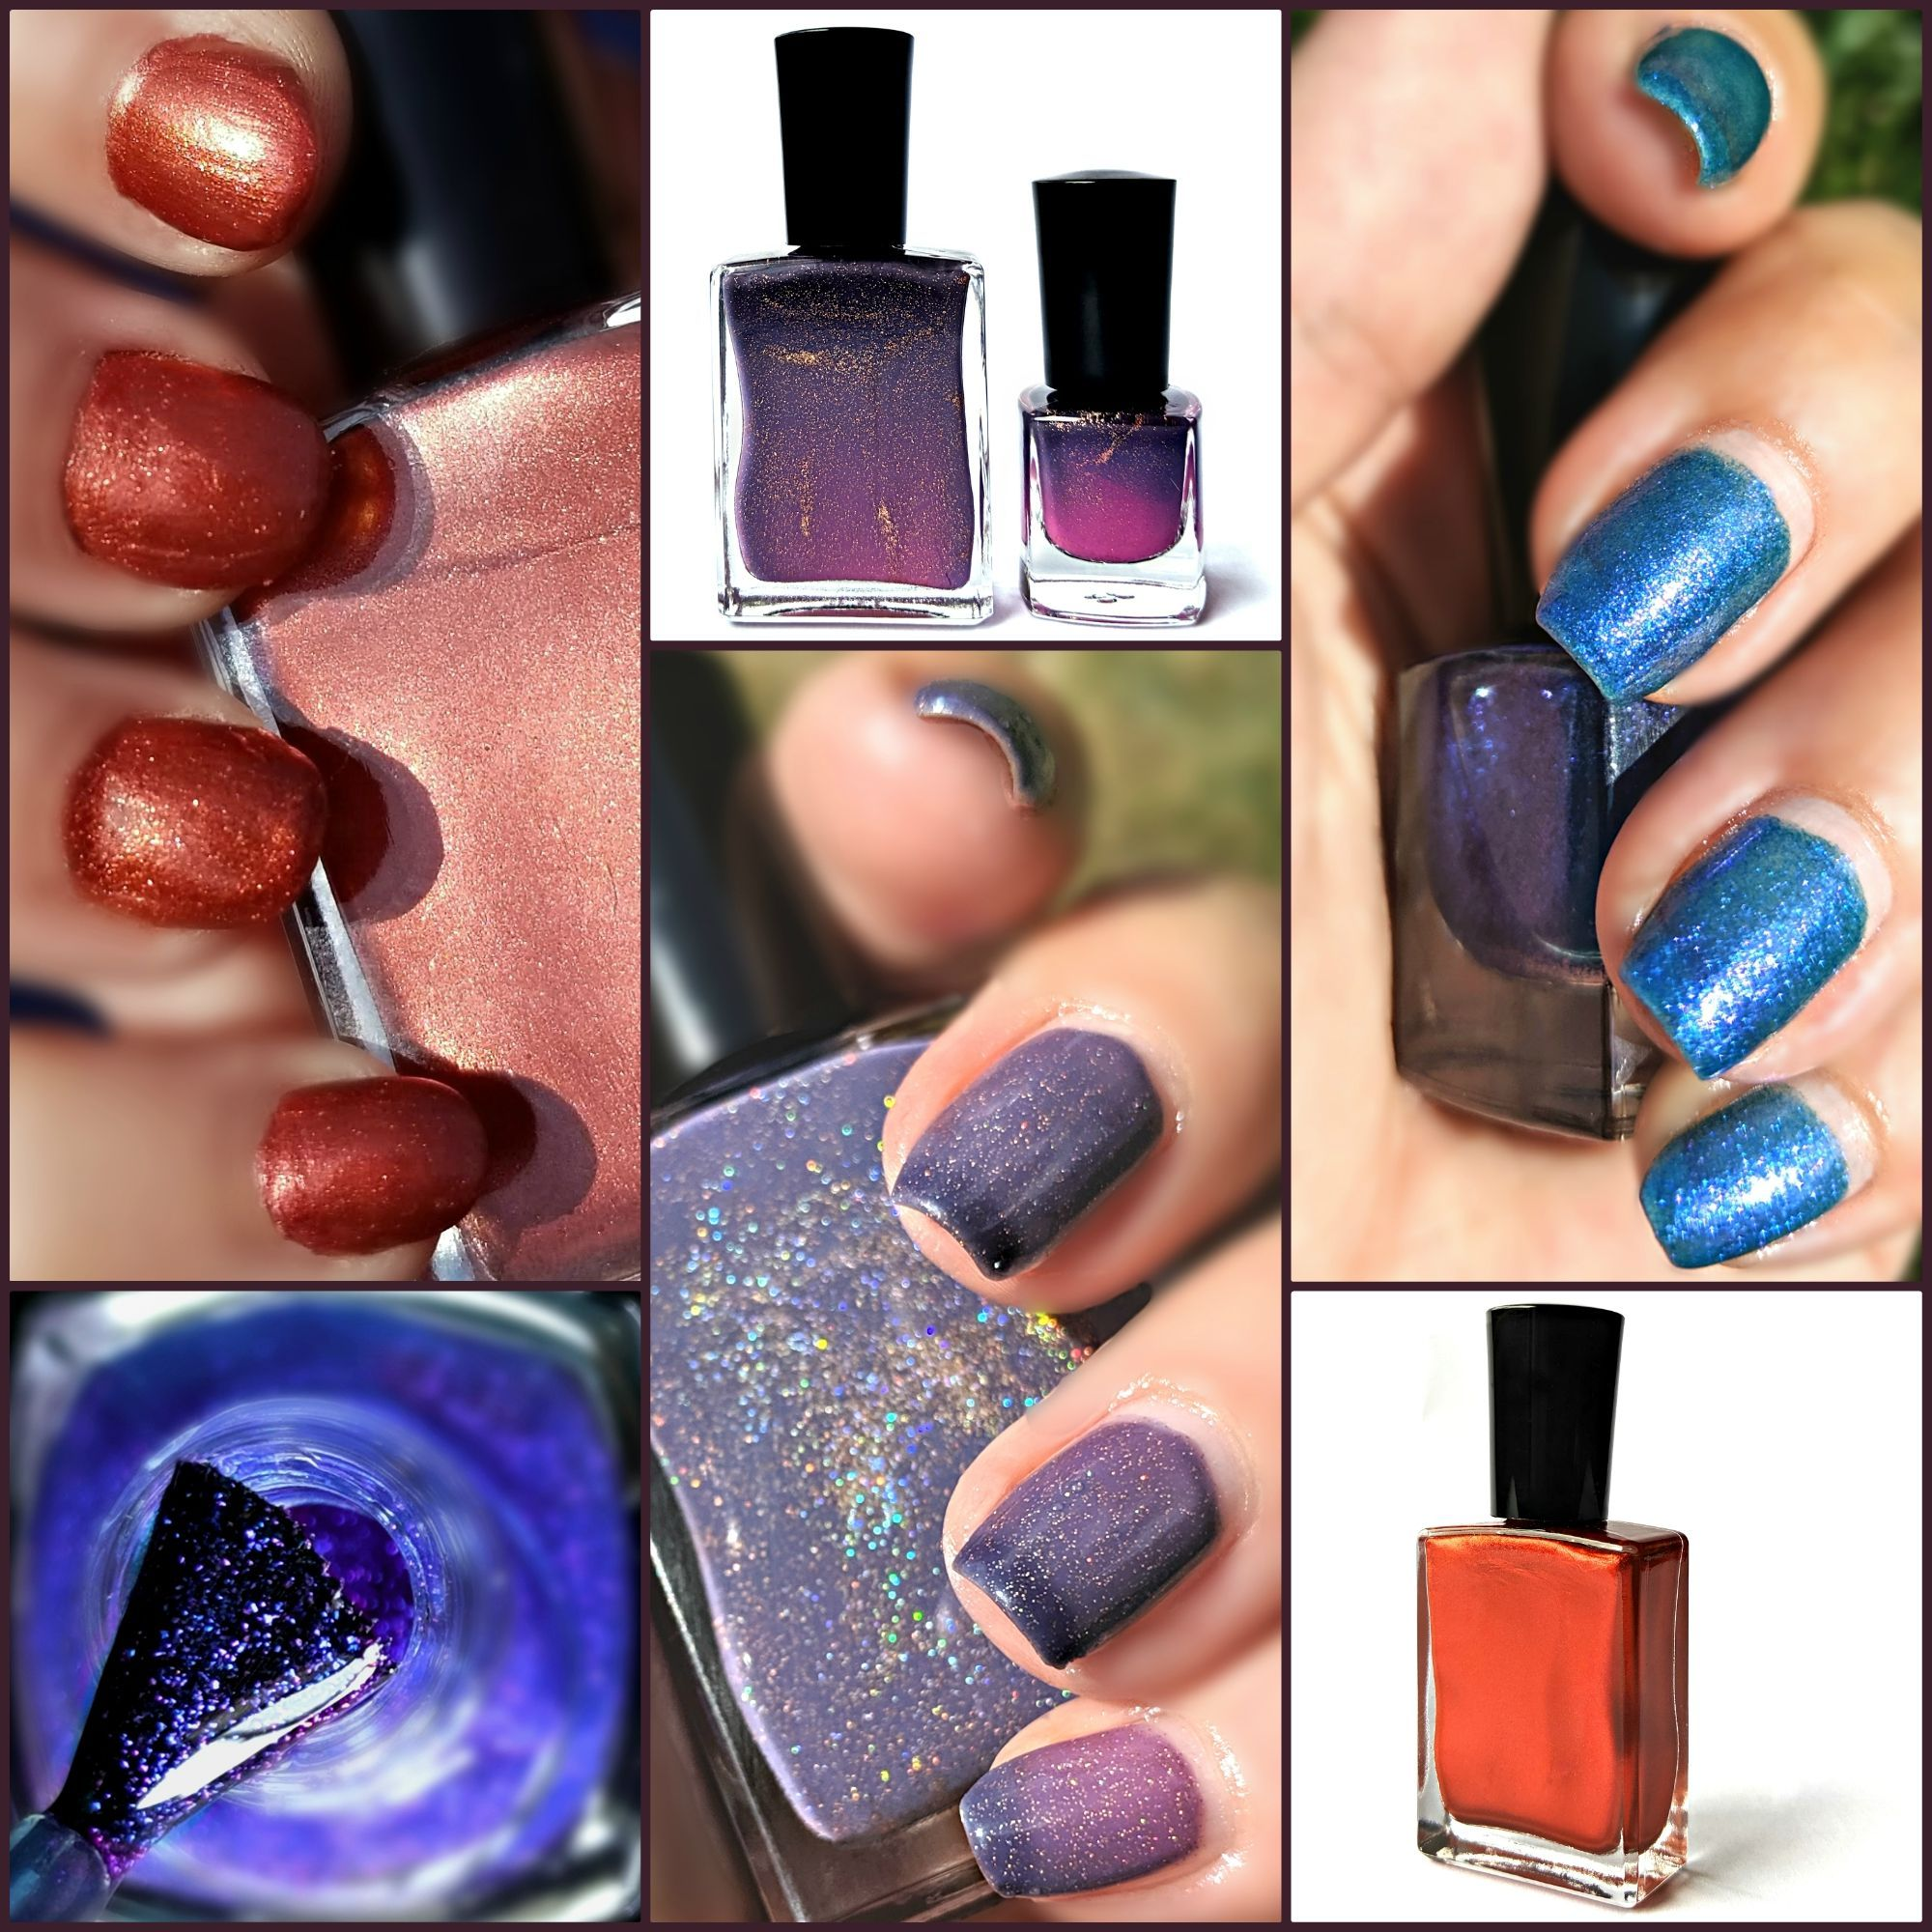 Dramatic nail polish shades from TGIY's Enchanted Forest